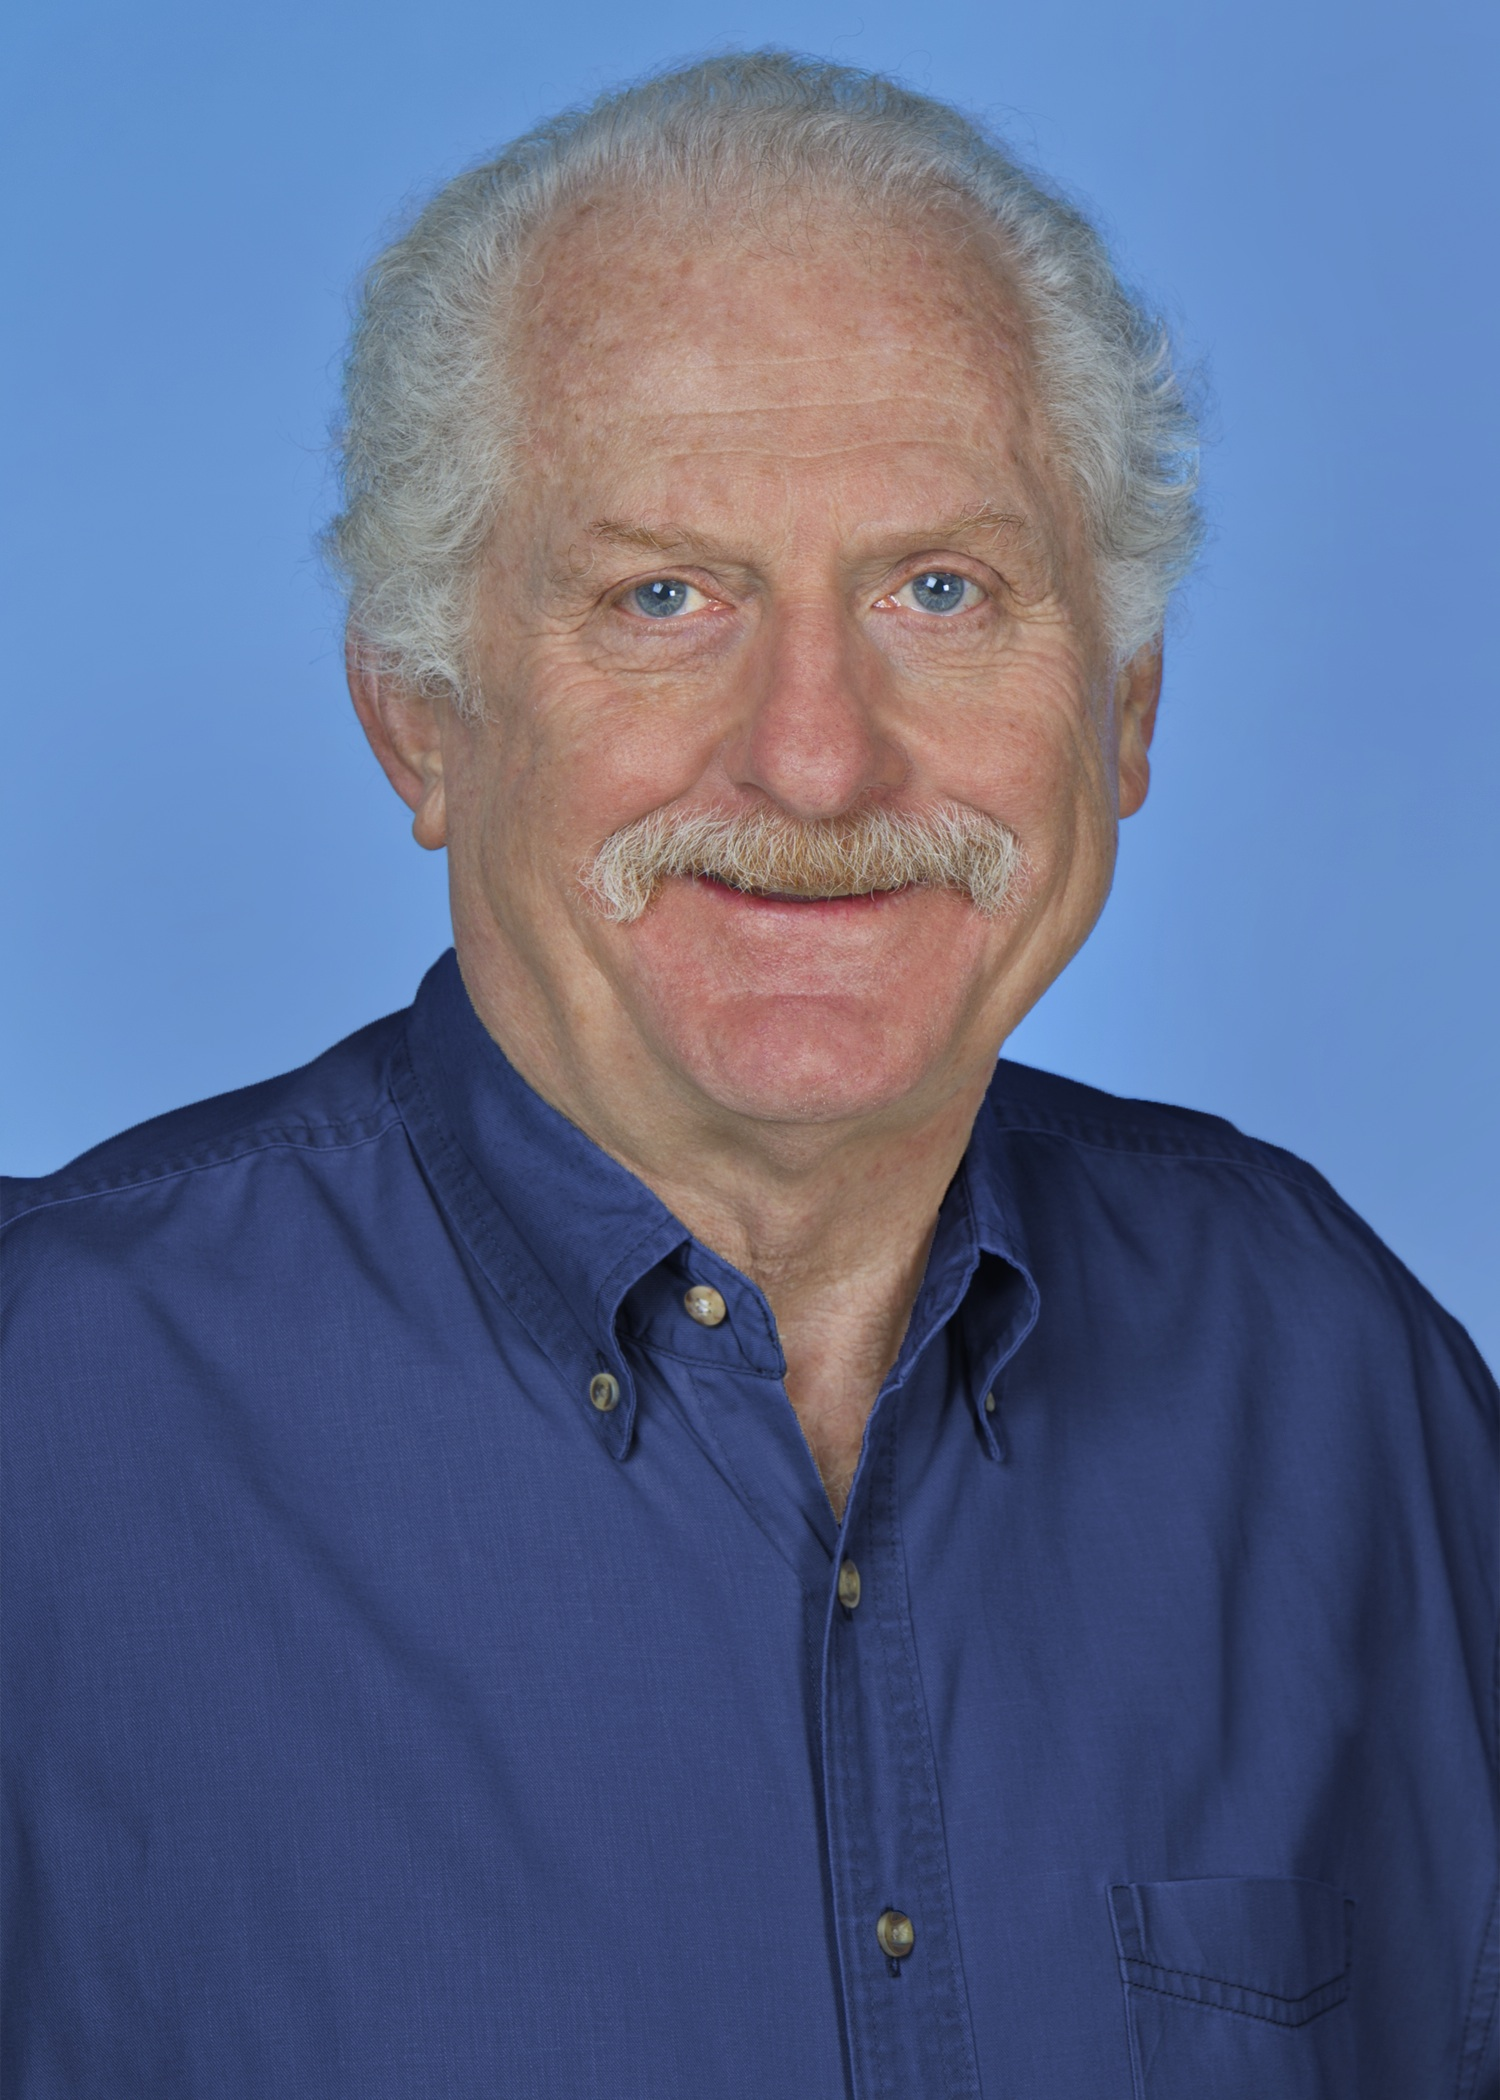 NI co-founder, president and CEO Dr James Truchard